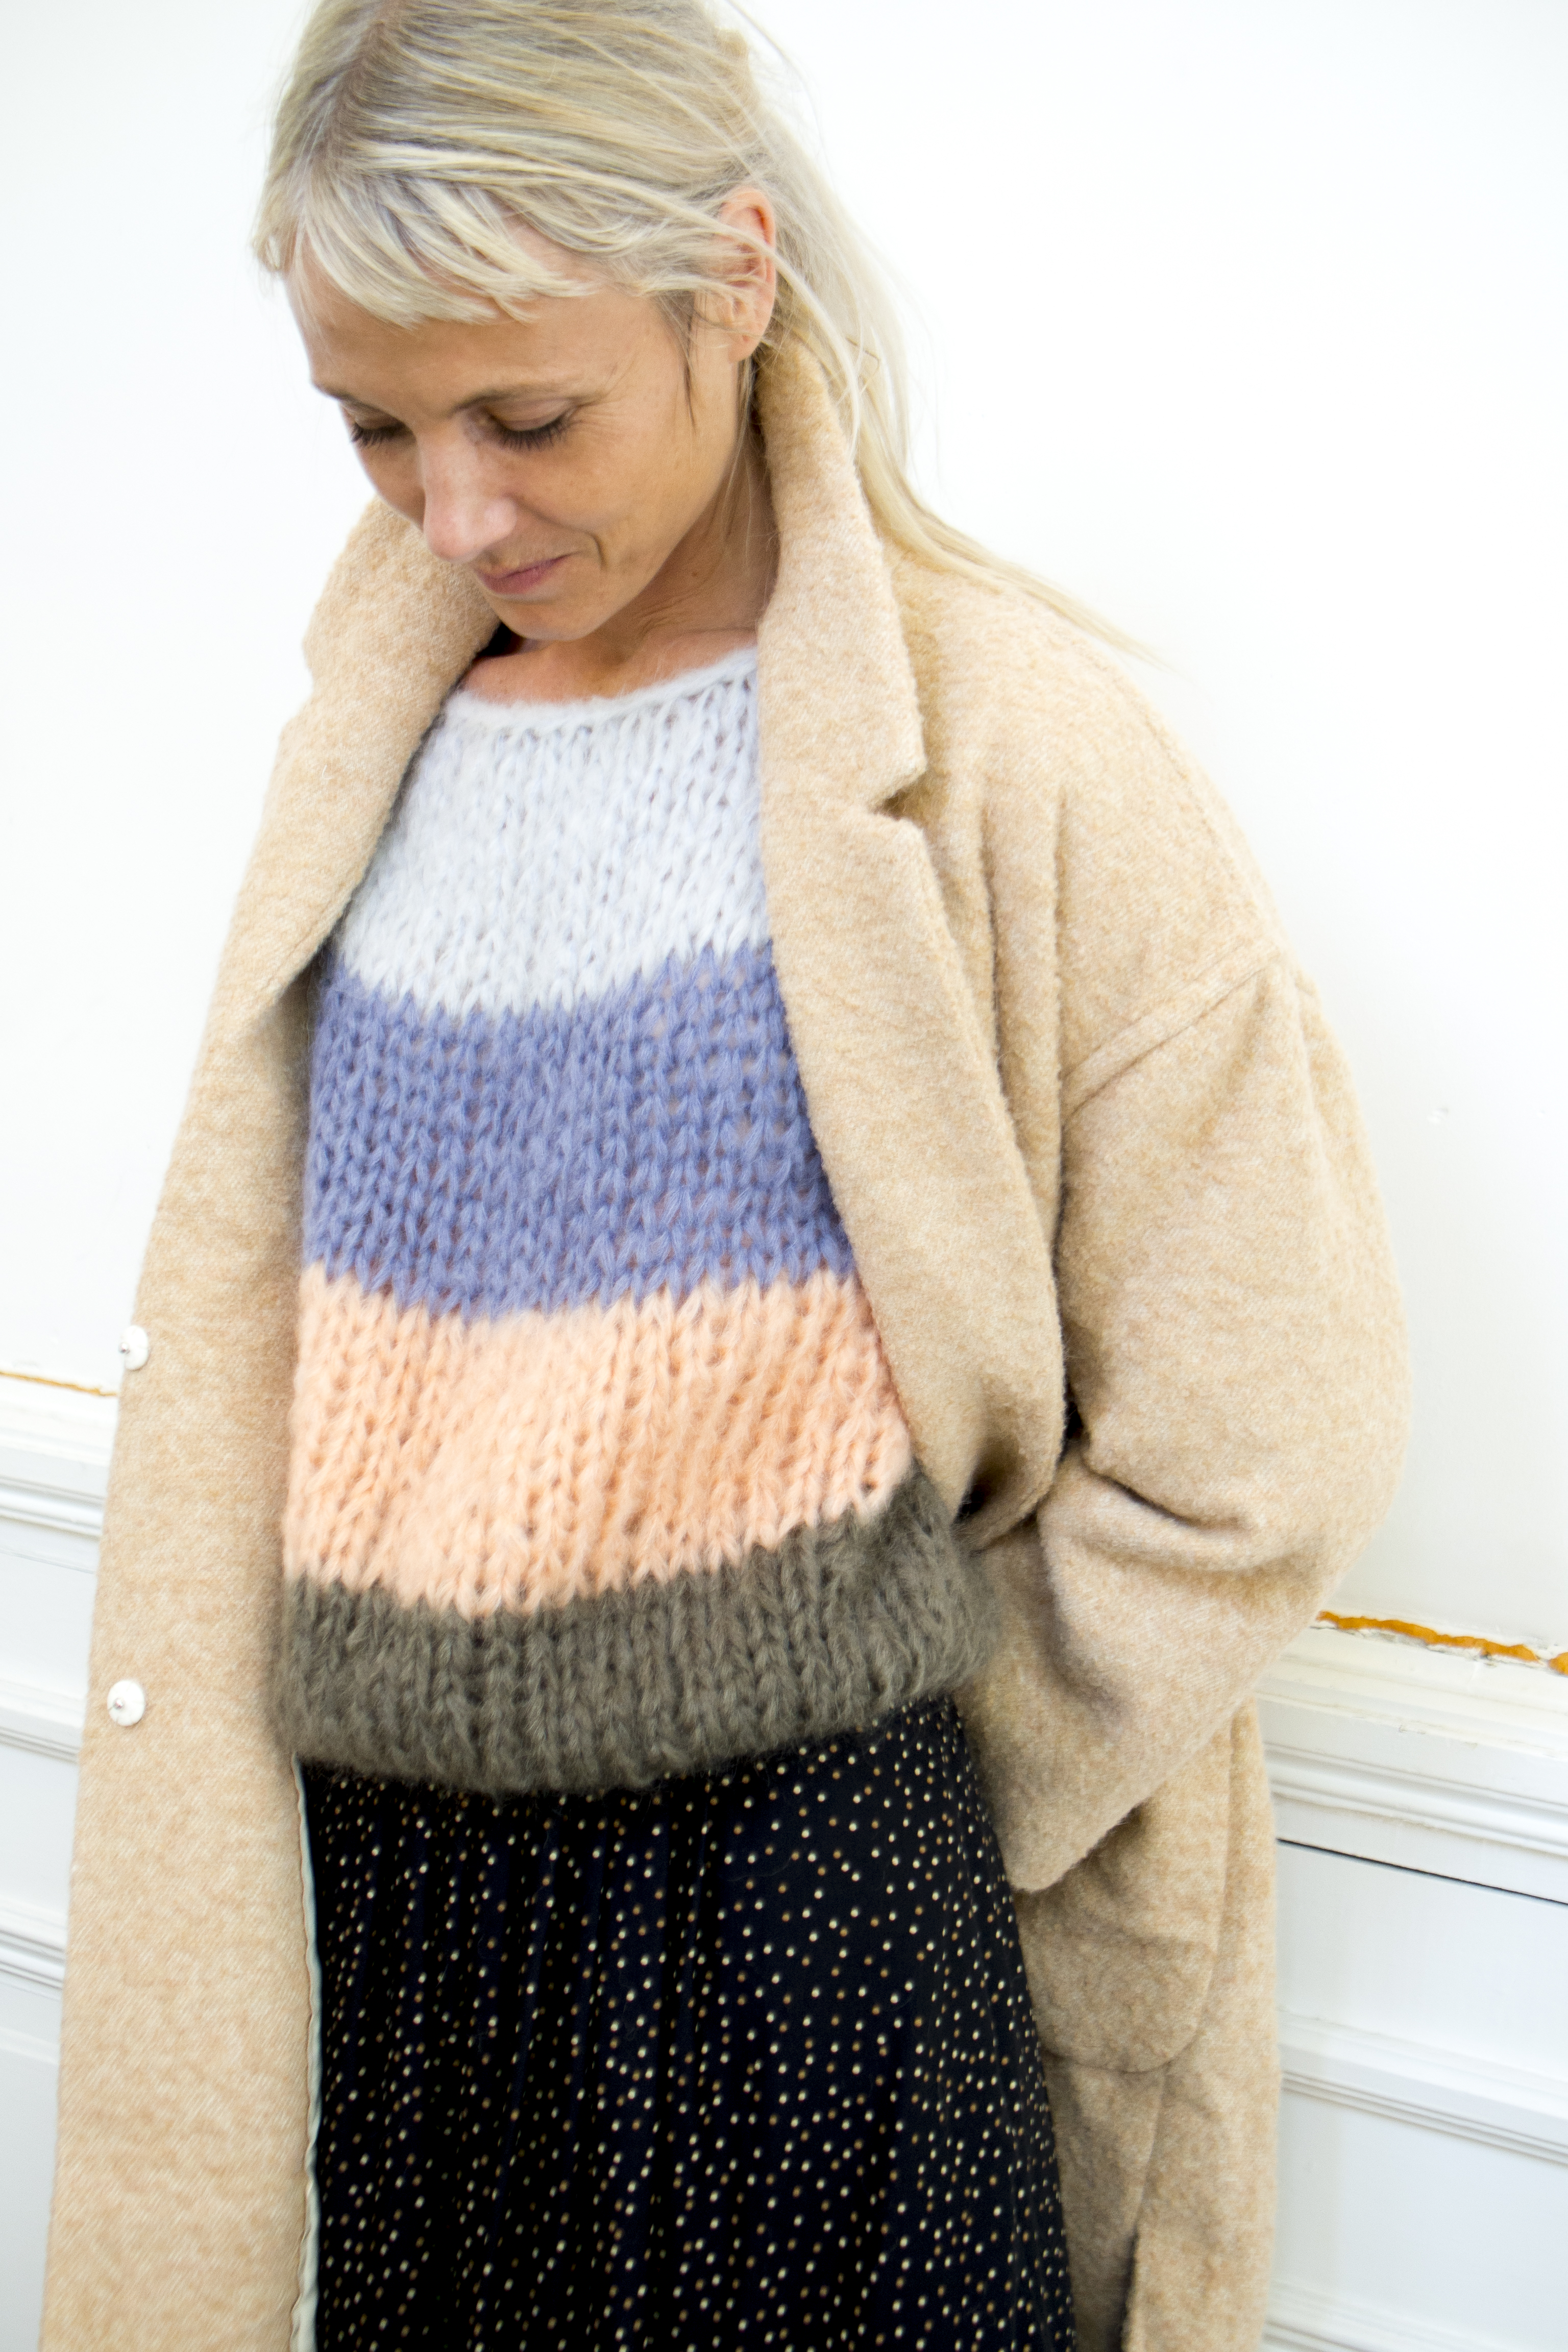 maiami mohair big sweater, enchantee skirt vanessa seward